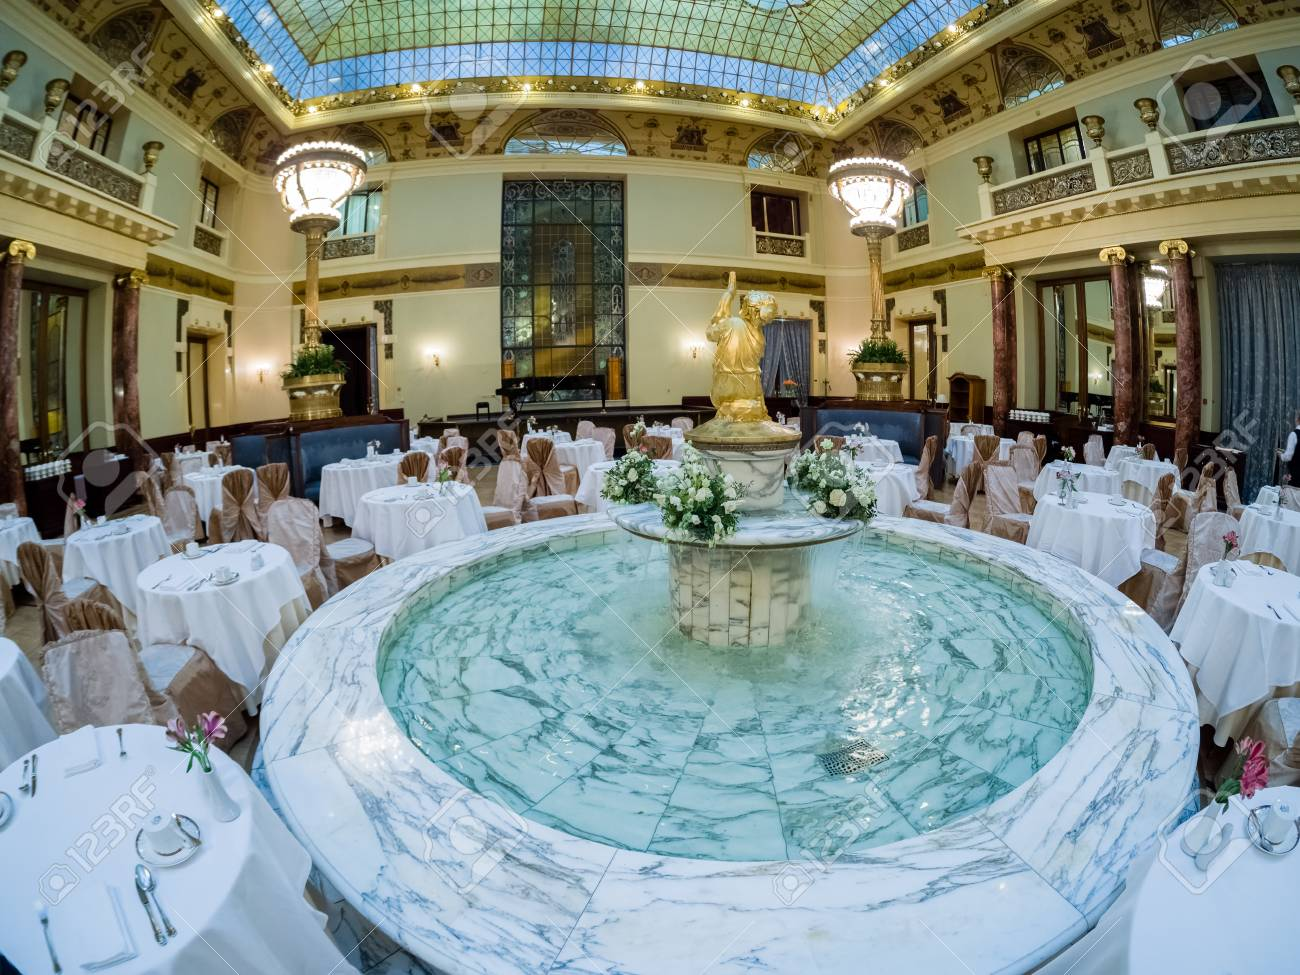 79120728-moscow-russia-april-27-2017-marble-fountain-of-metropol-hotel-main-restaurant-in-moscow-russia-on-ap 2.jpg